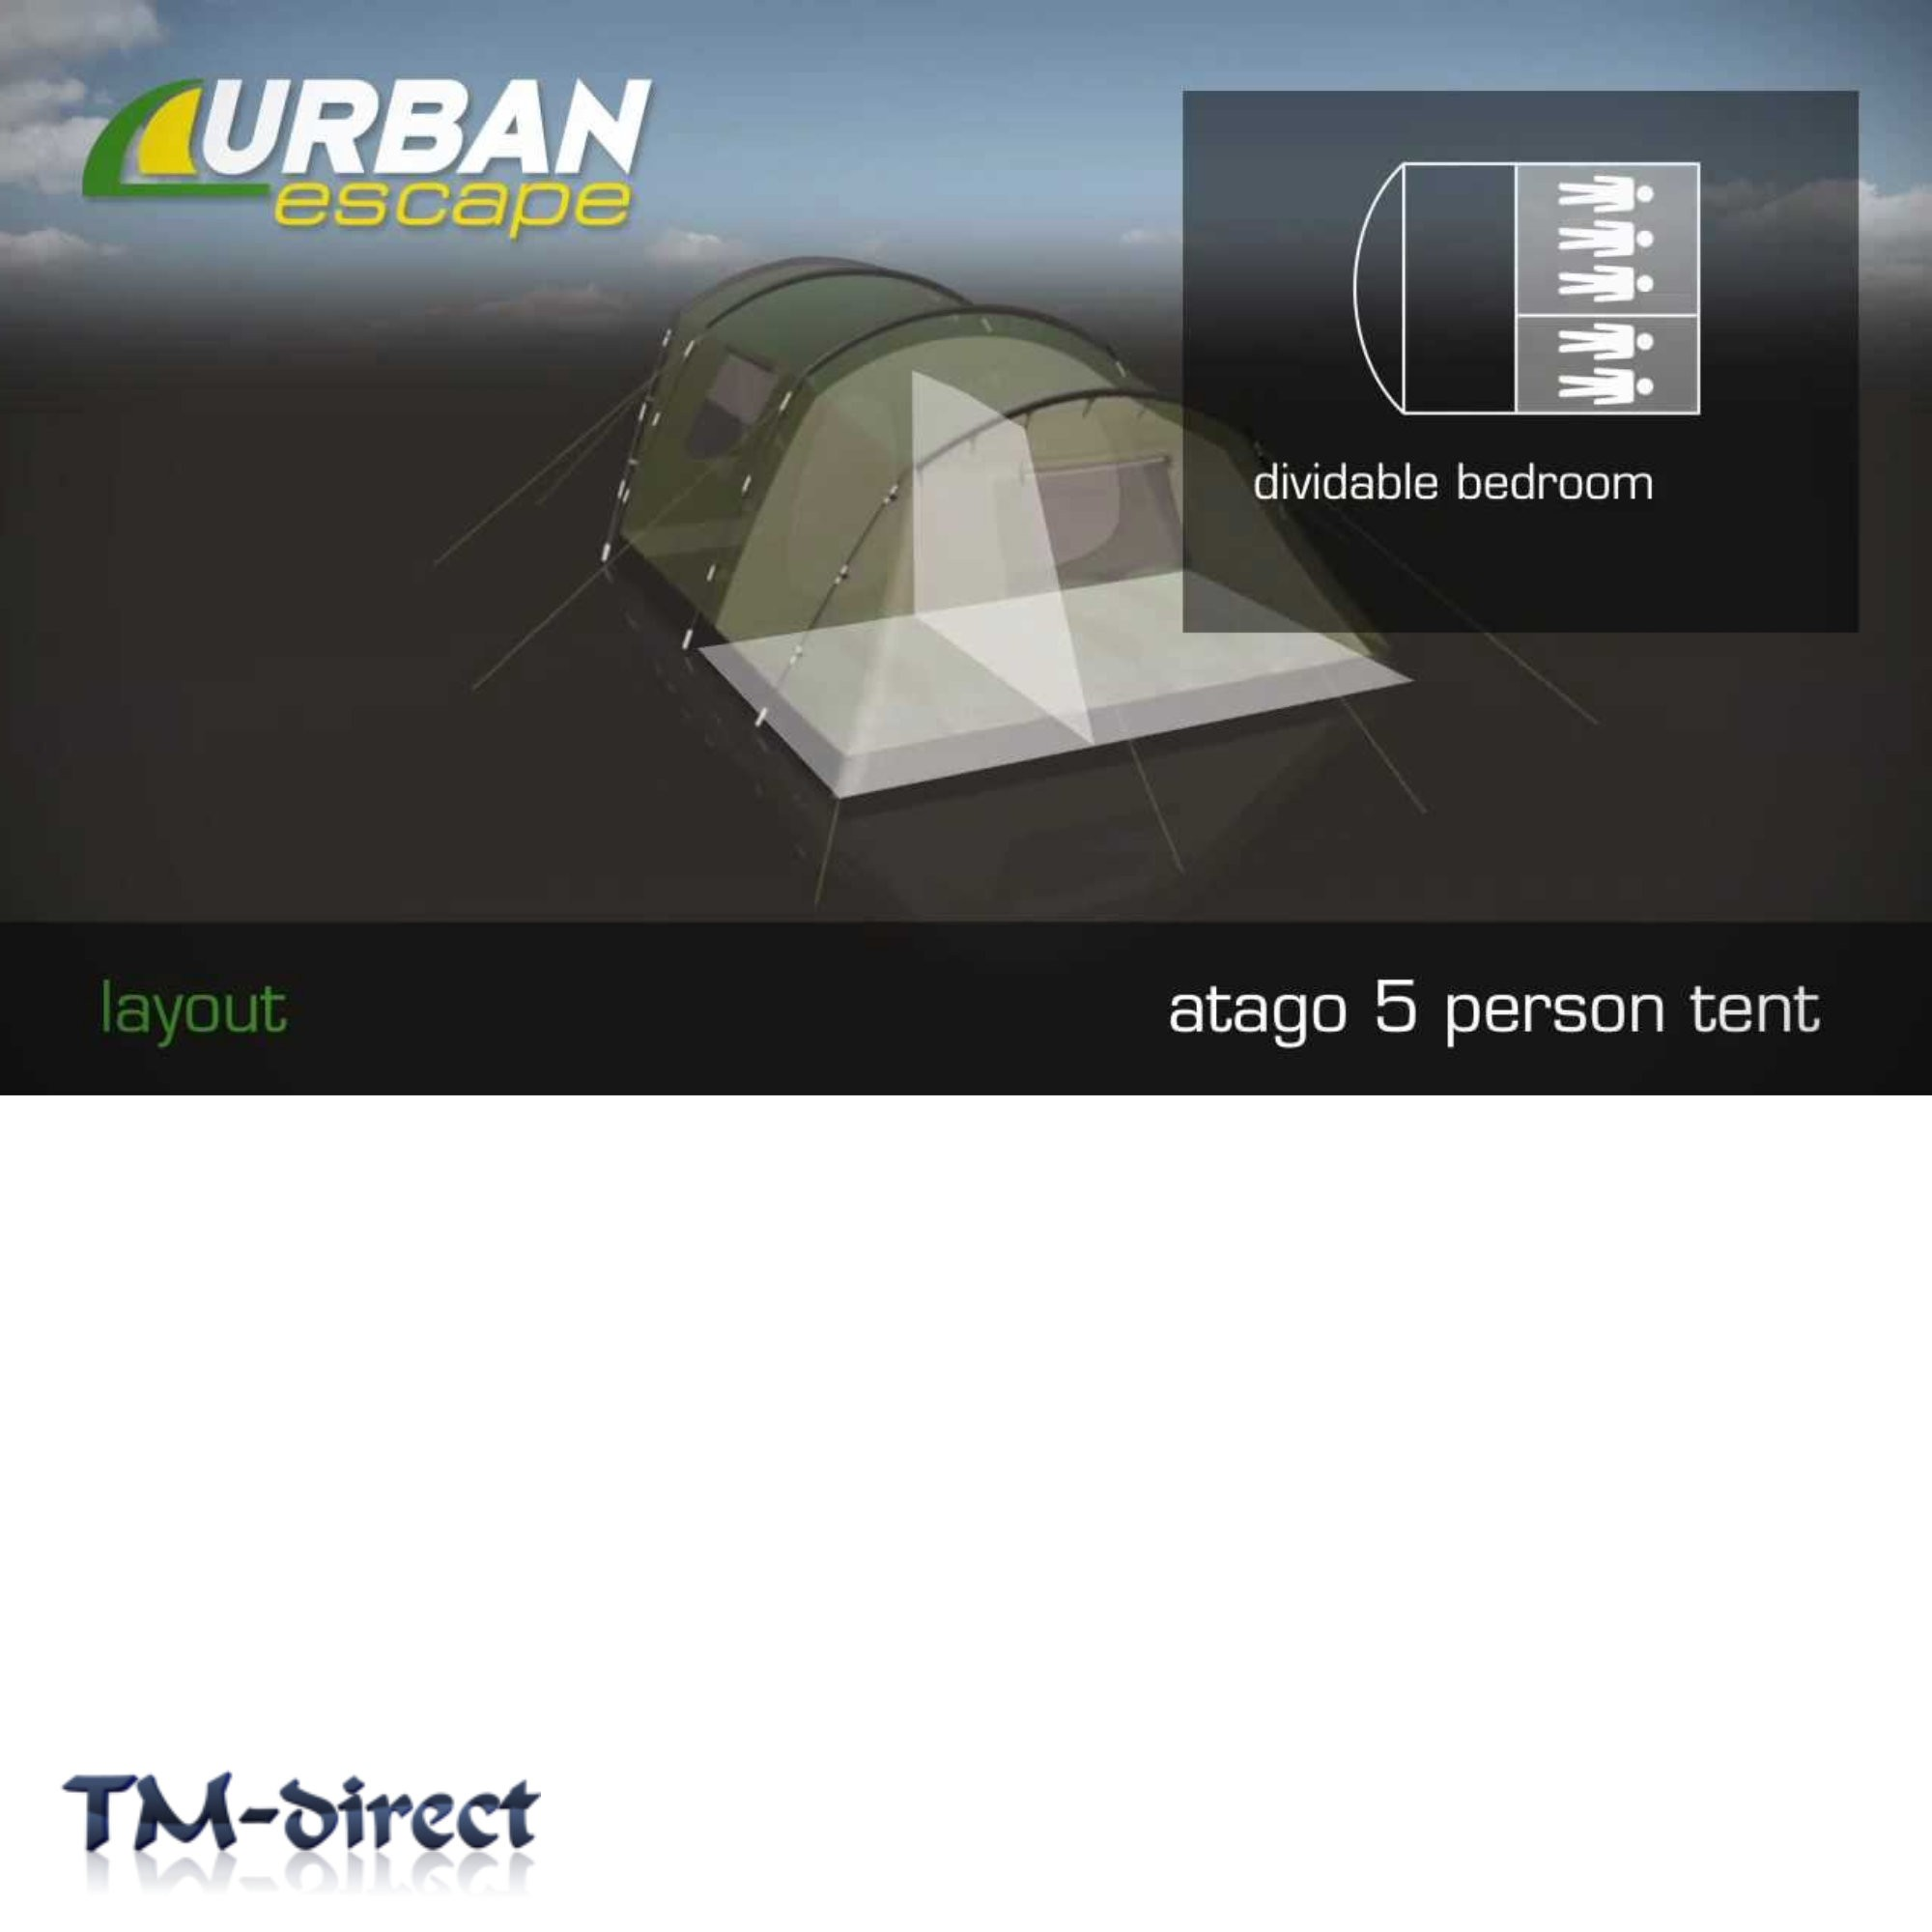 ... Urban Escape Atago 5 Person Berth Tent Green Tunnel 2 Sleeping Areas Double Skin ...  sc 1 st  TM-direct LTD & Urban Escape Atago 5 Person Berth Tent Green Tunnel 2 Area Double Skin